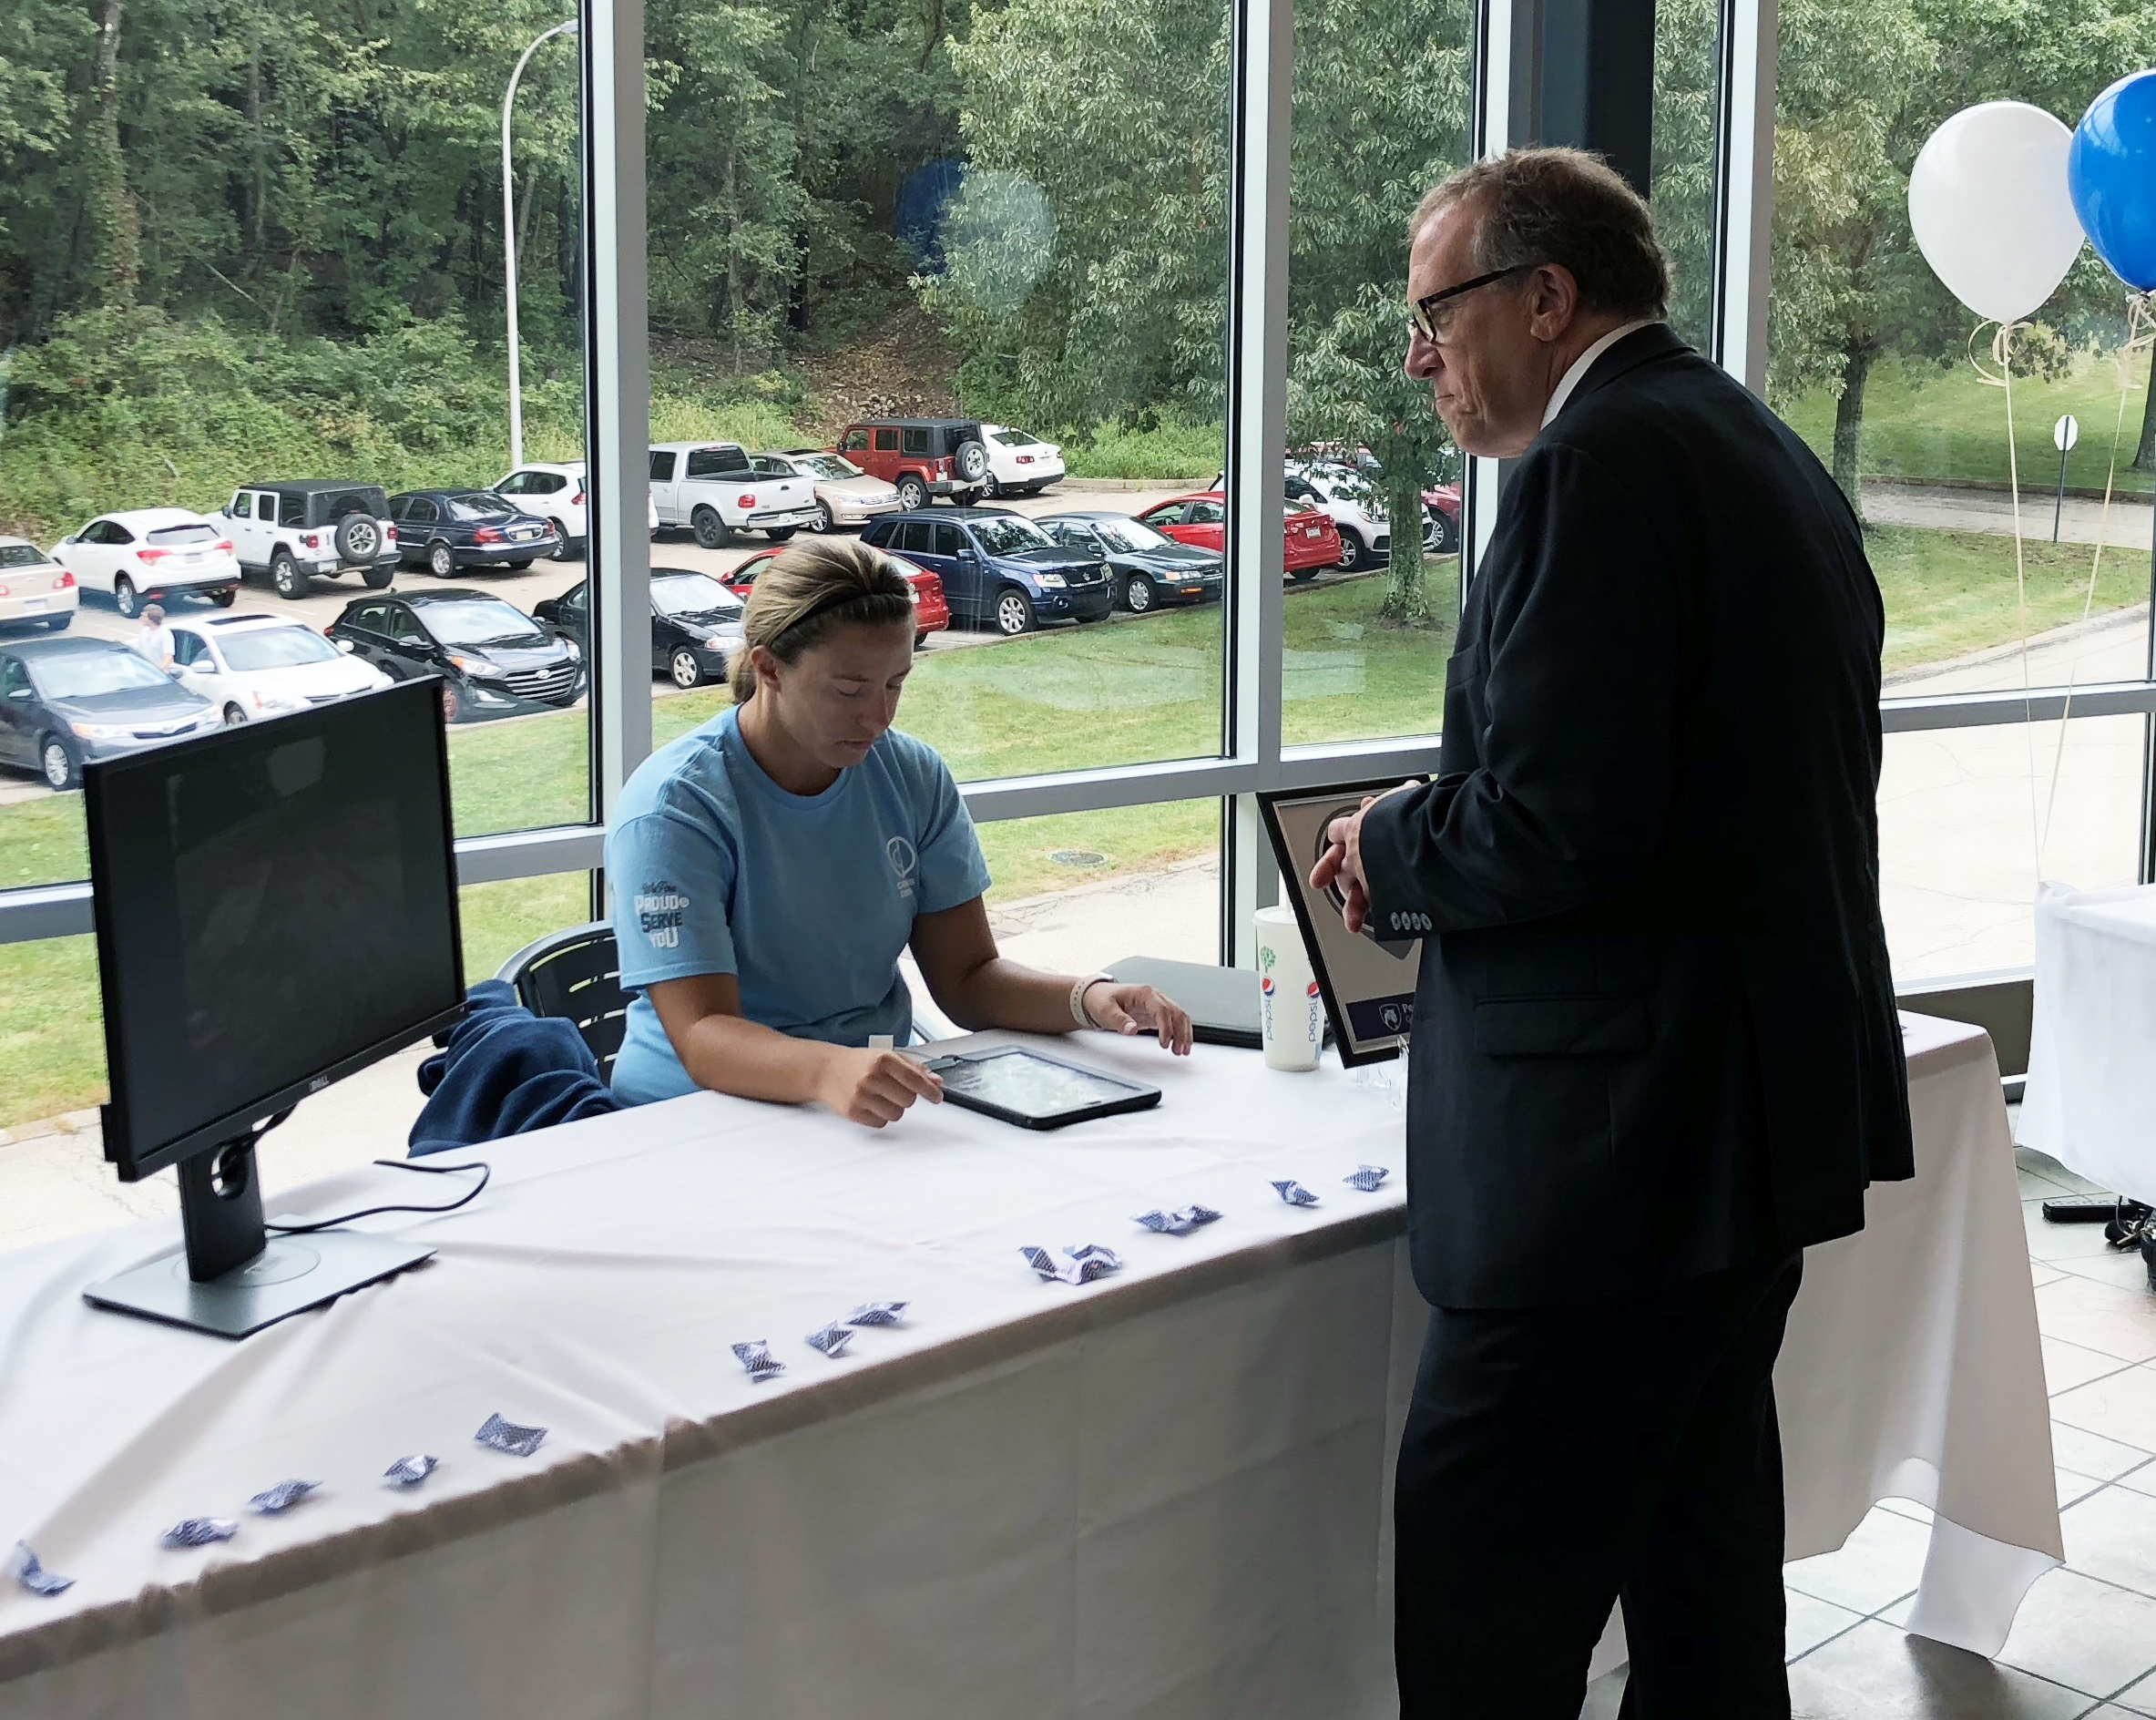 Student showing Vice President of Information Technology Michael Kubit how Physical plant is using iPad.